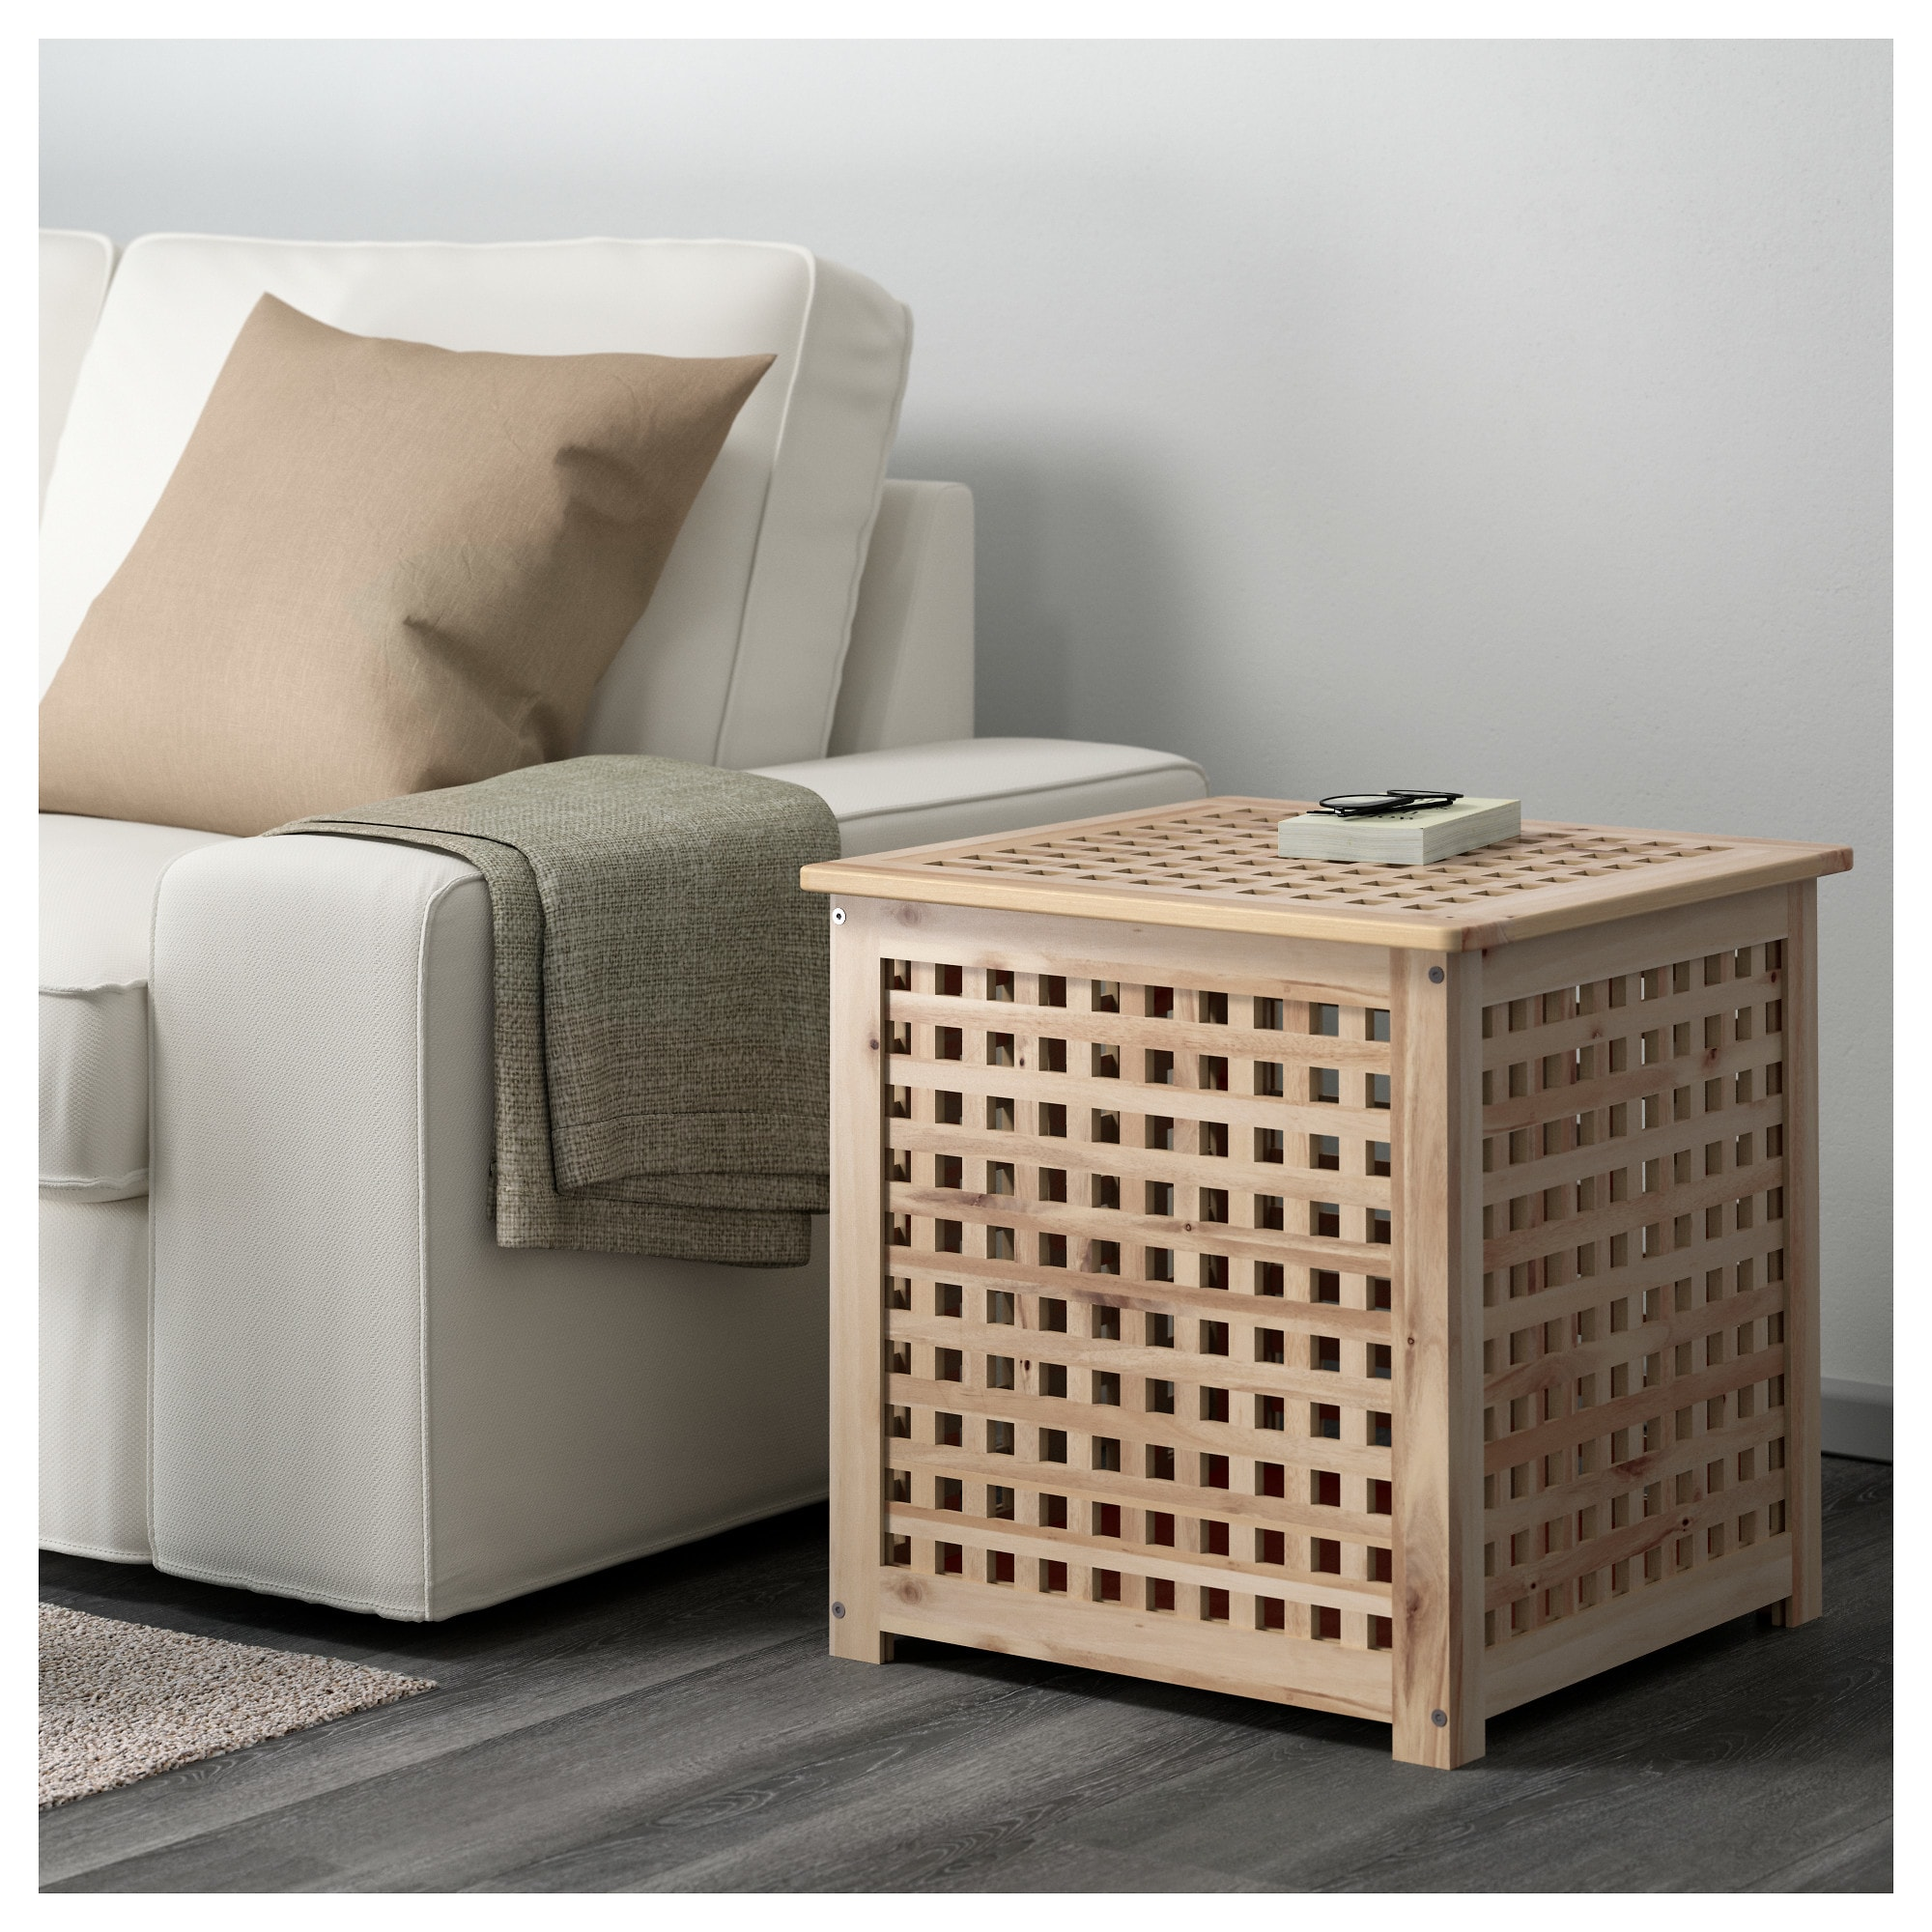 Hol Side Table Acacia 50x50 Cm Ikea Ikea Side Table With Storage Table Storage [ 2000 x 2000 Pixel ]